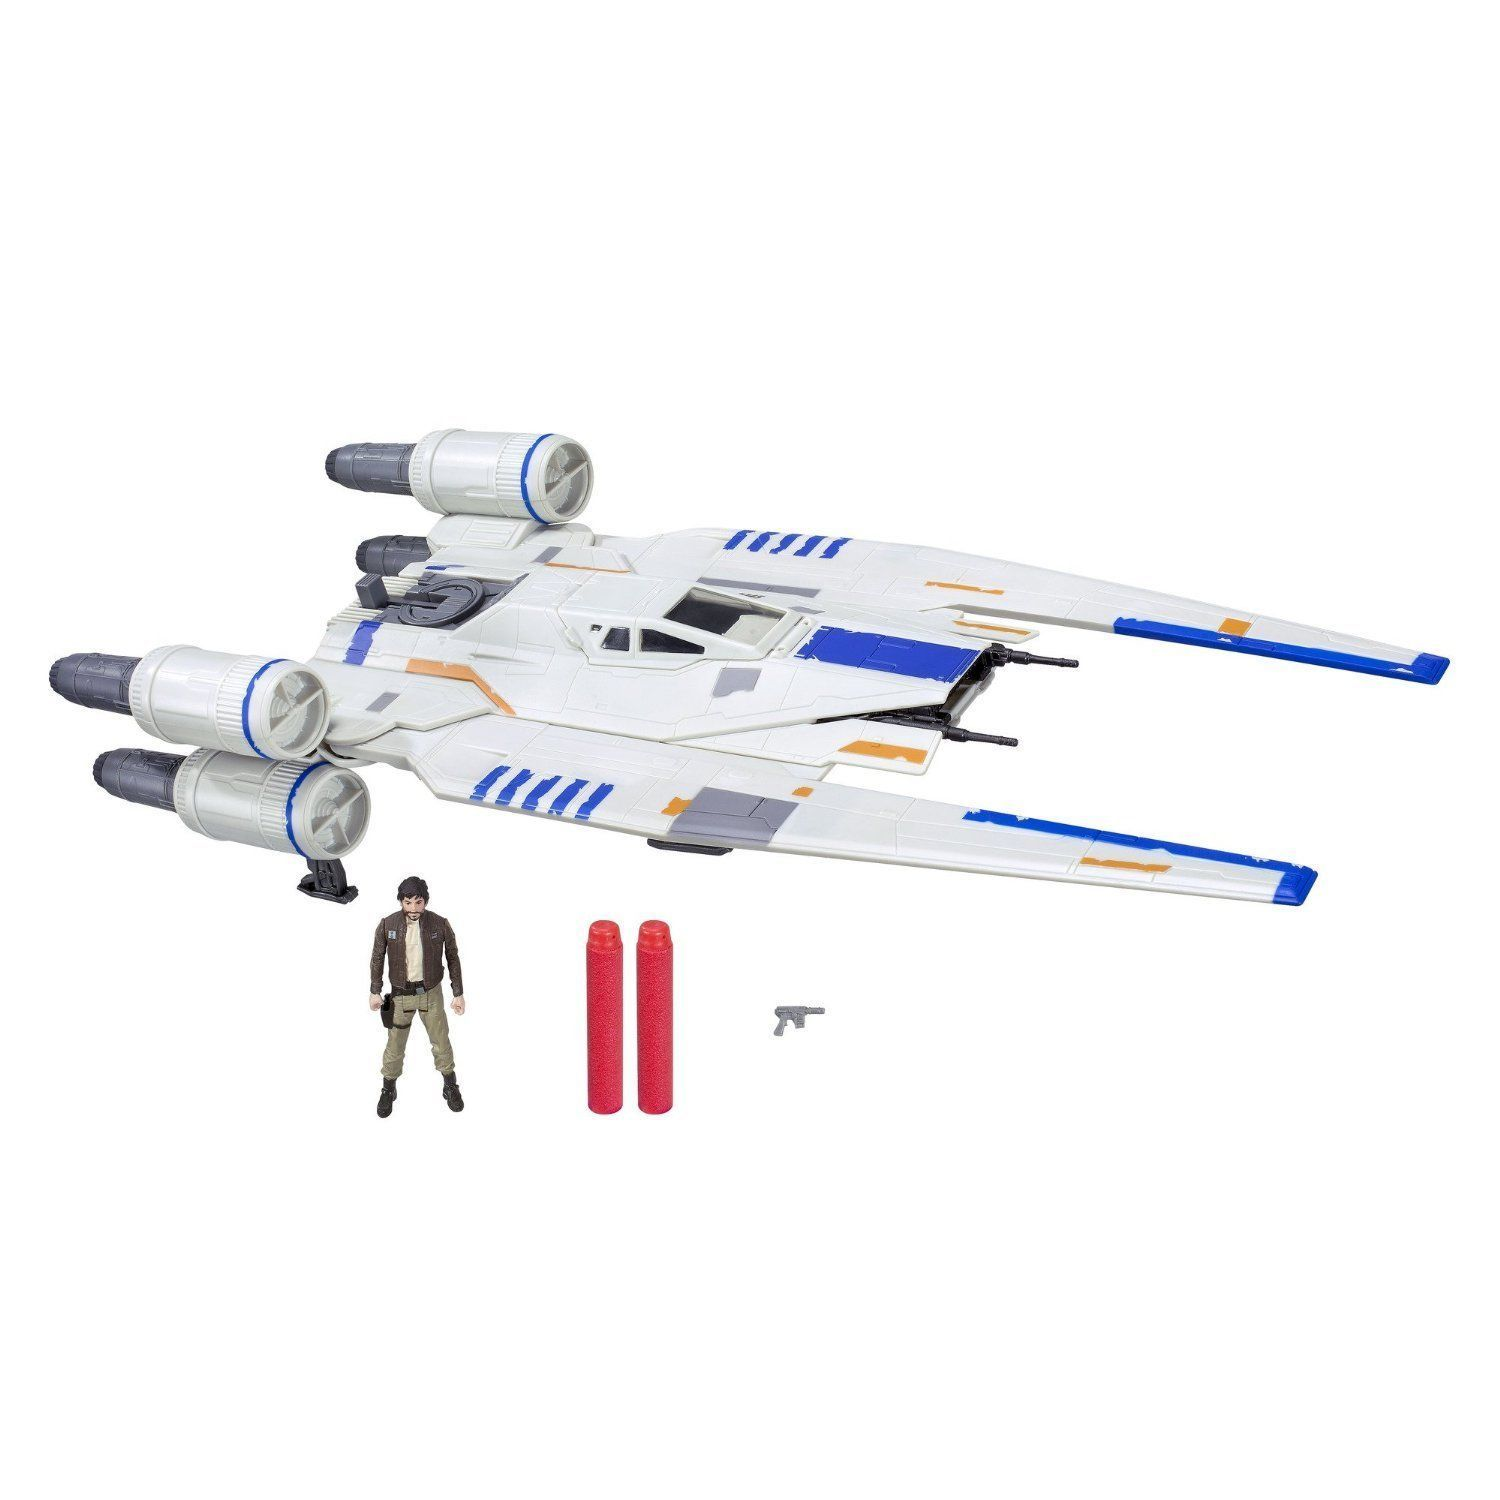 Star Wars Rogue One Rebel U-Wing Fighter Vehicle, Hasbro, 6+